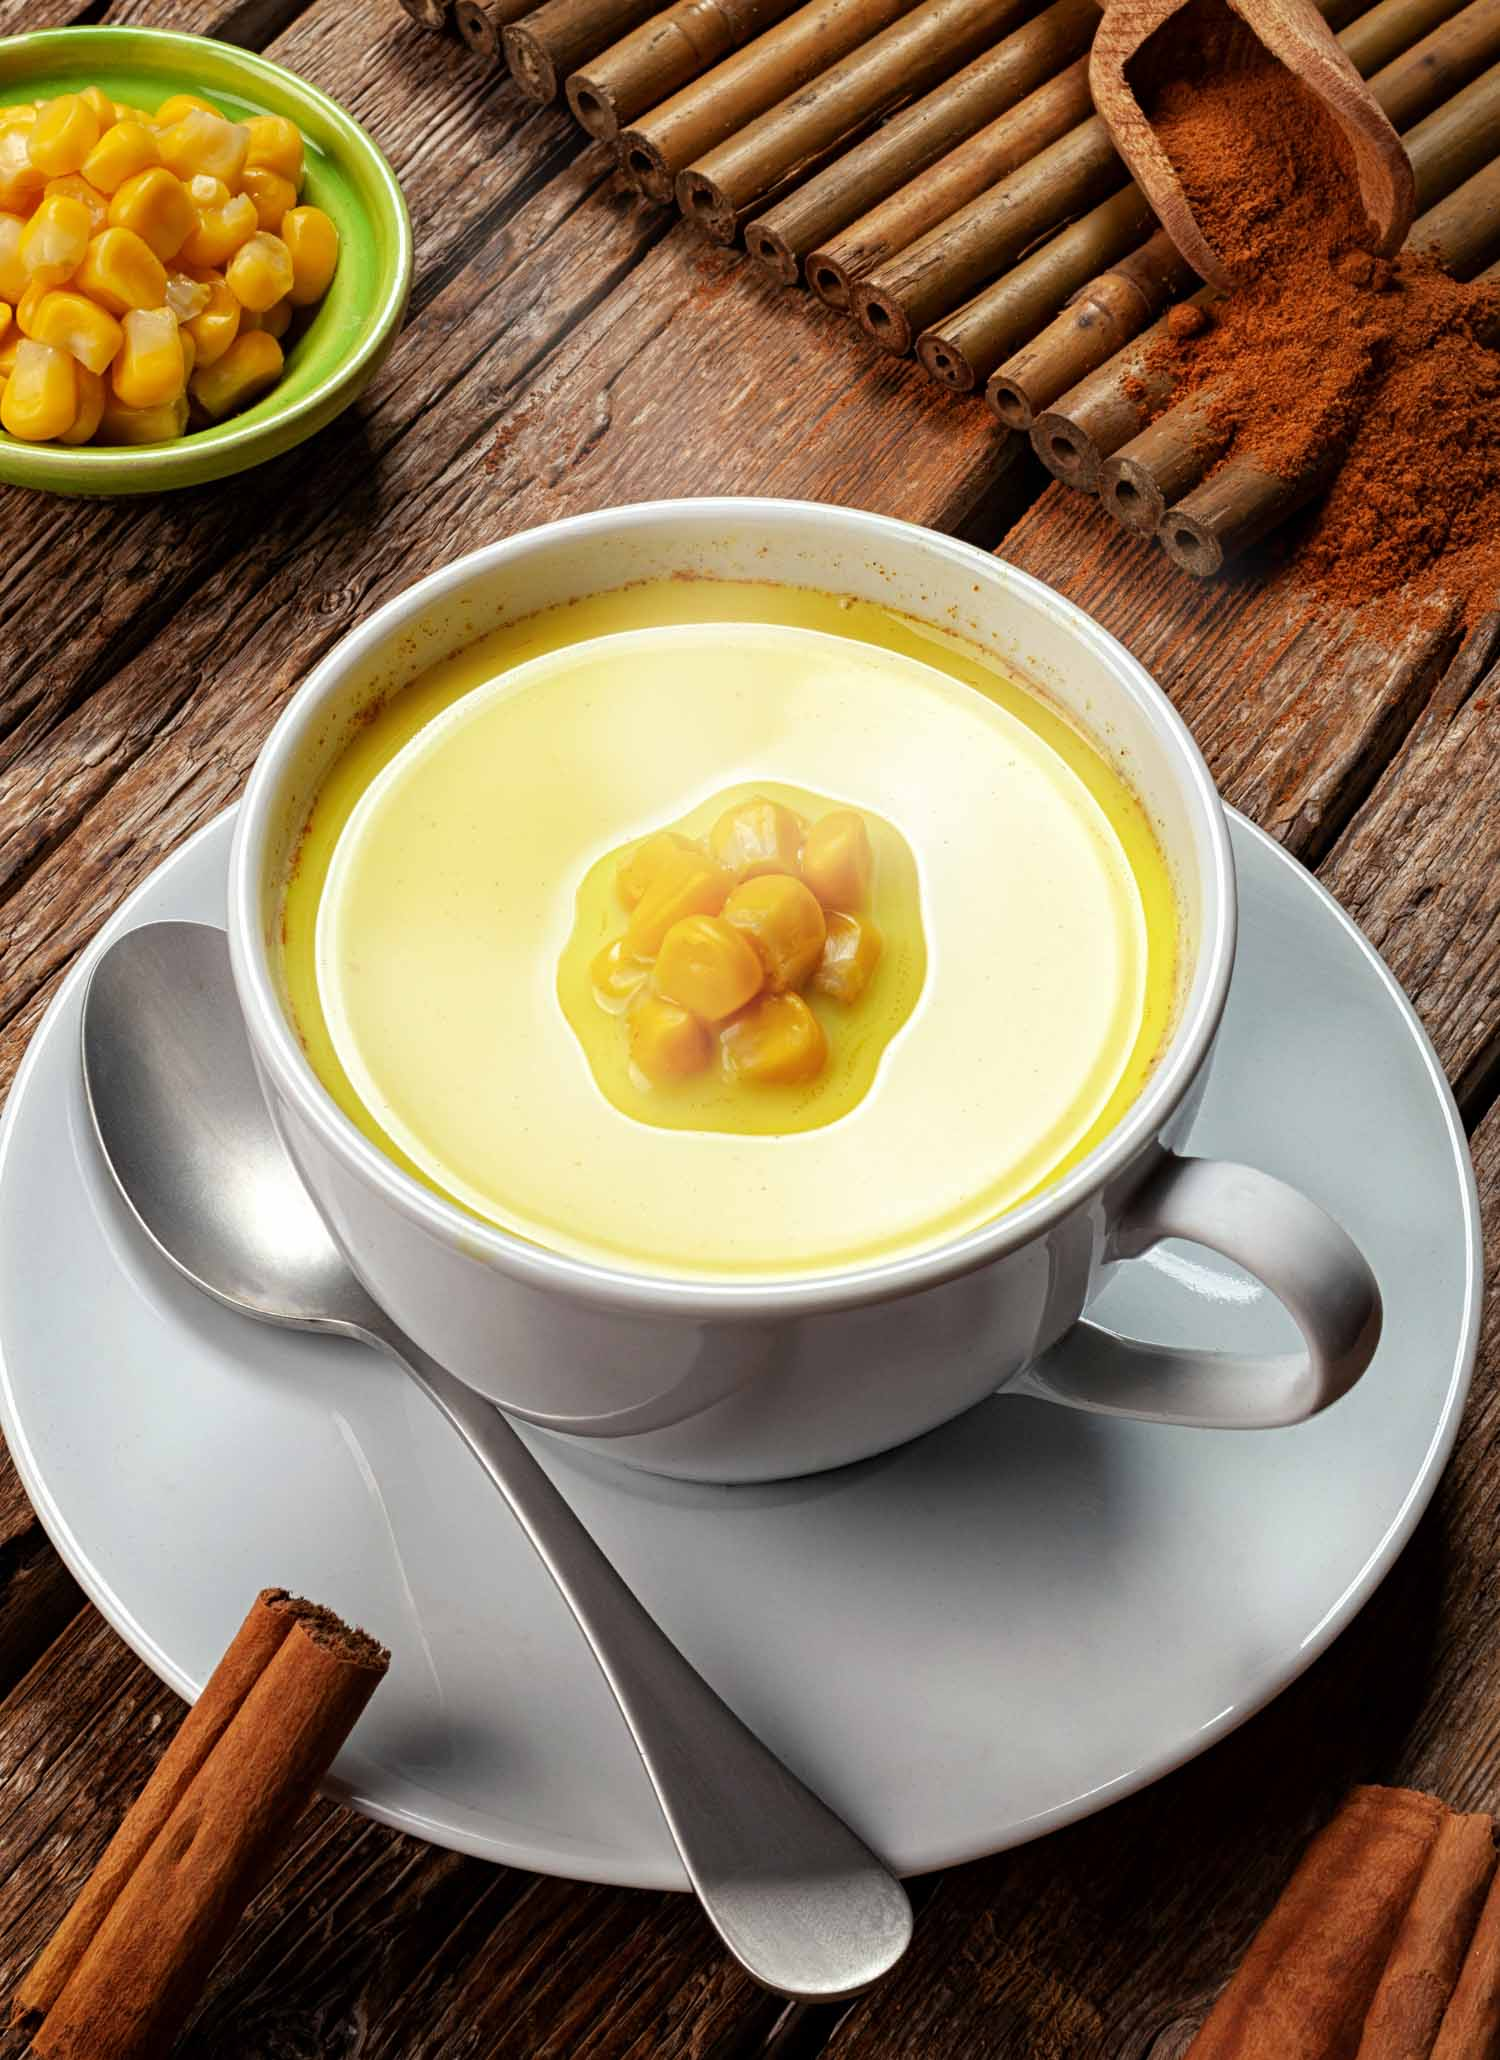 Atol de elote, one of the most common Honduran drinks, on a table with corn and cinnamon garnishes.